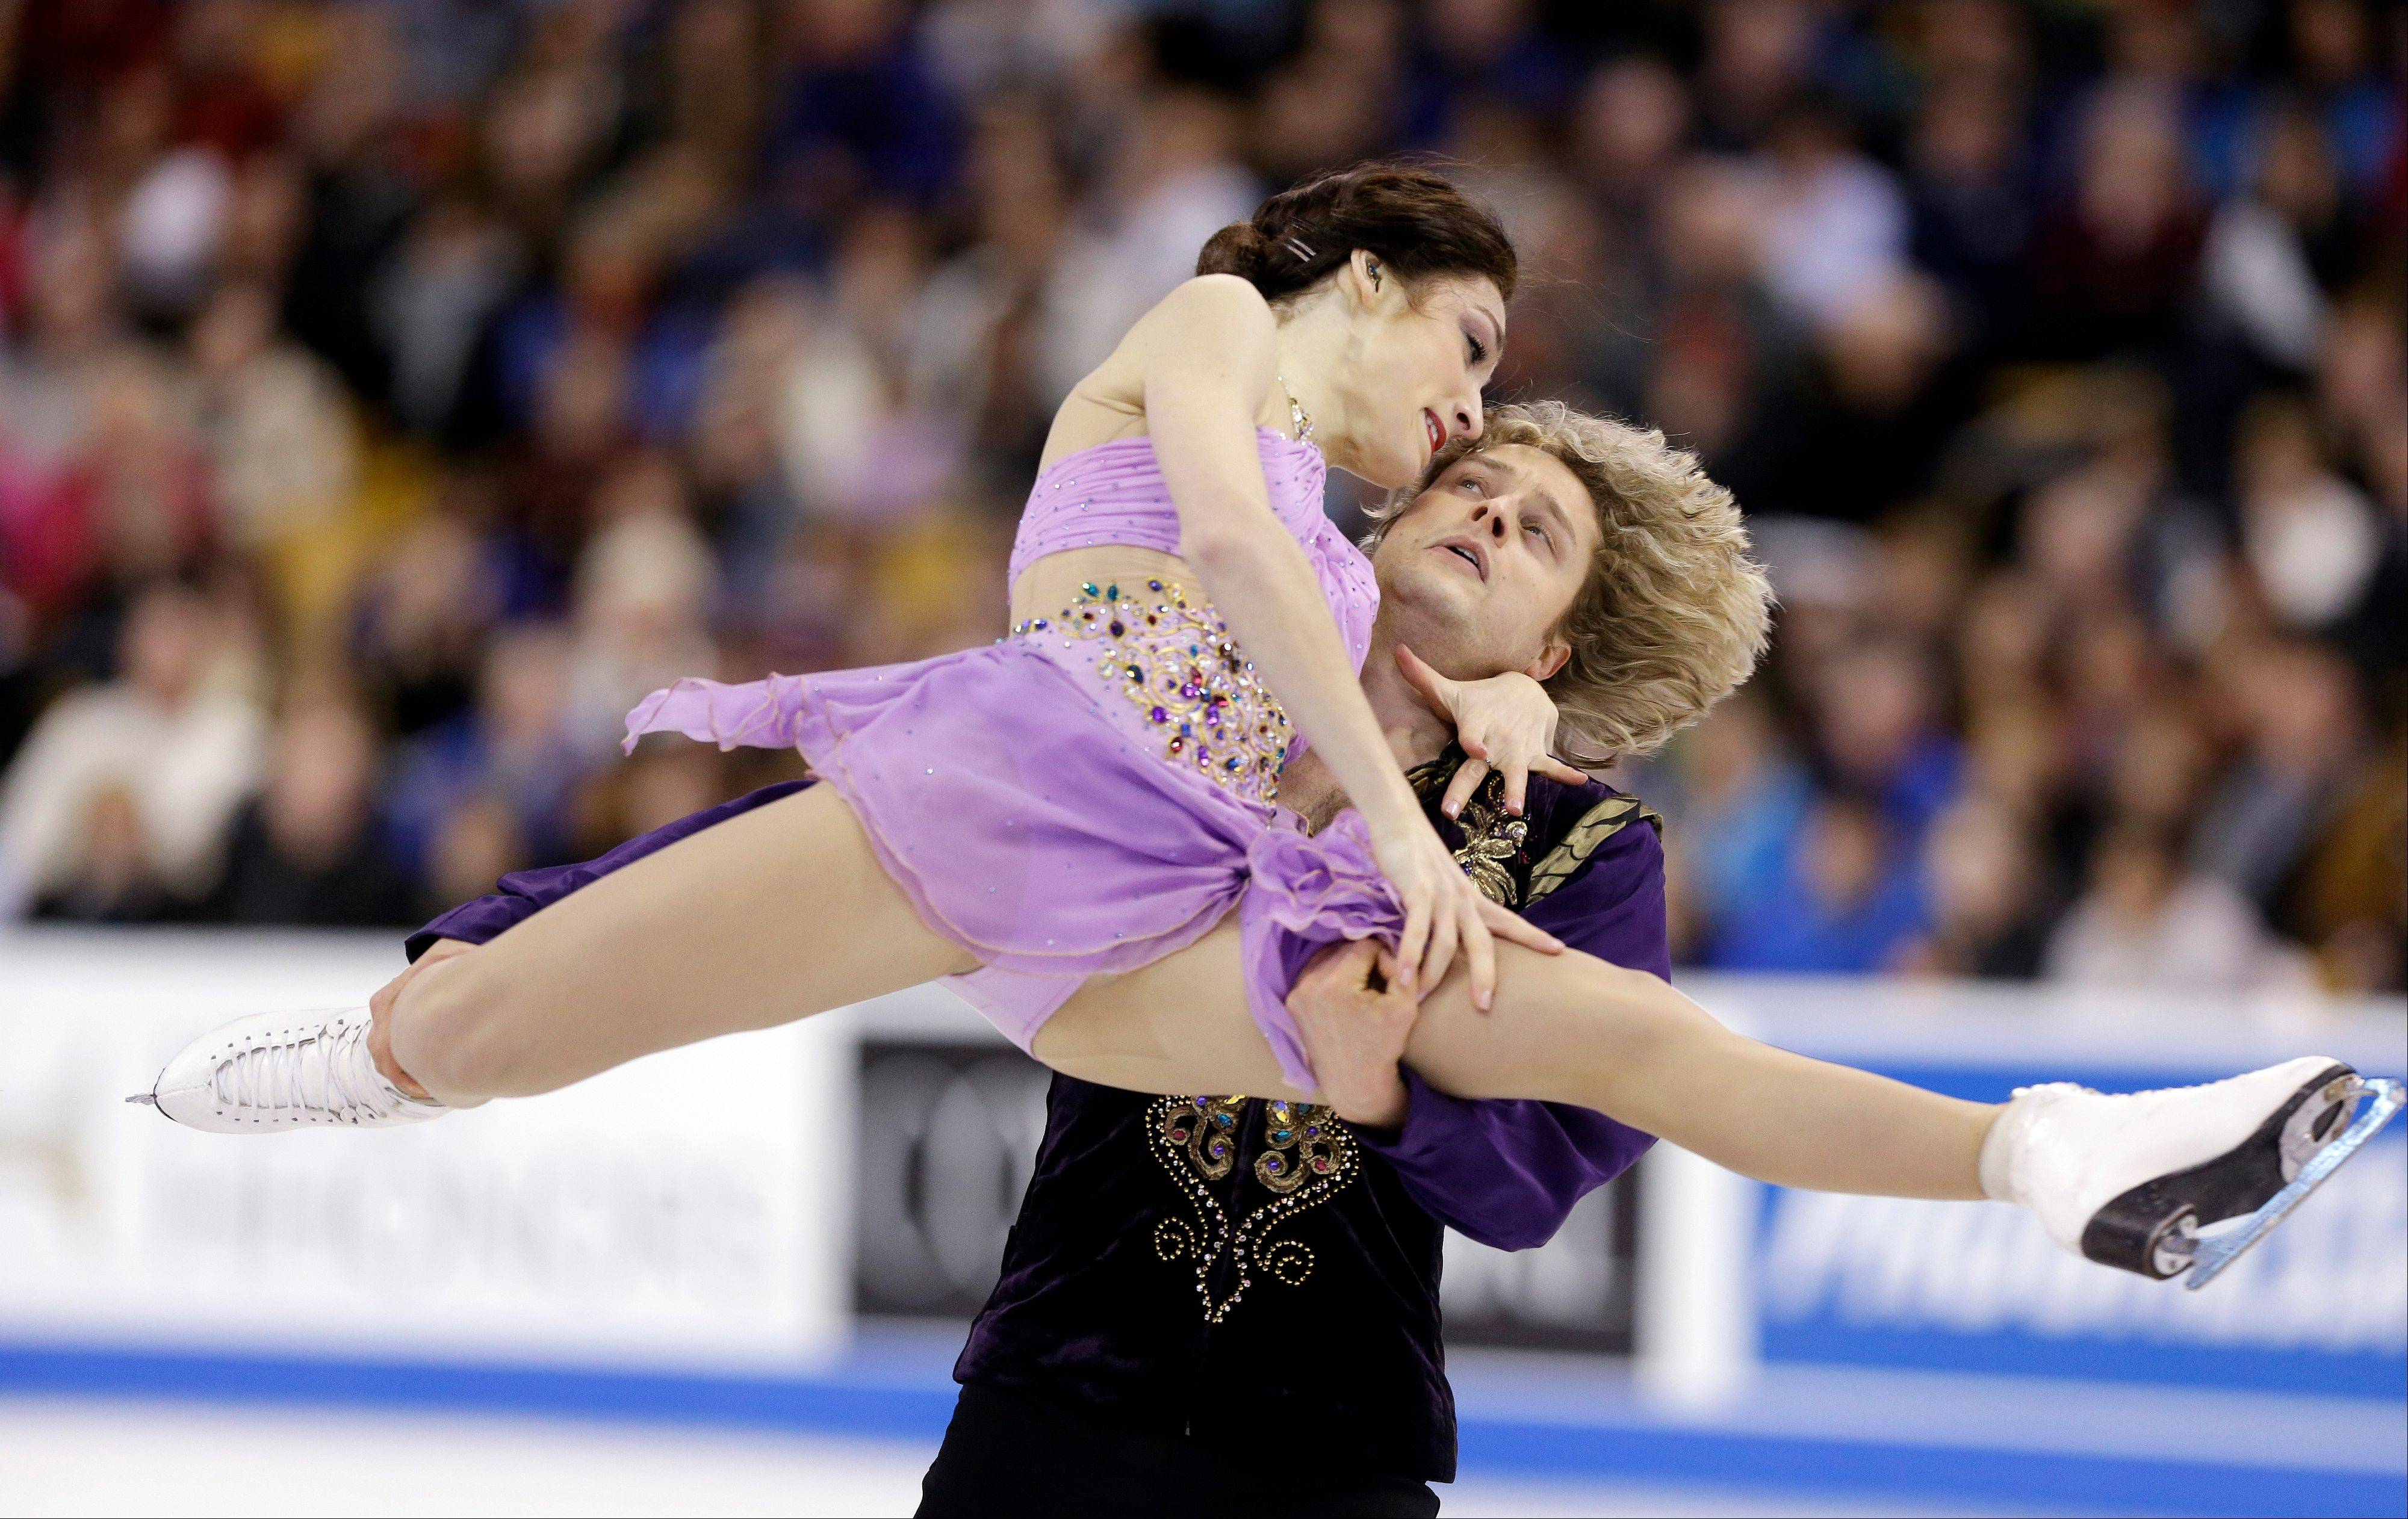 Meryl Davis and Charlie White display their winning form during the ice dance free skate at the U.S. Figure Skating Championships Saturday in Boston.